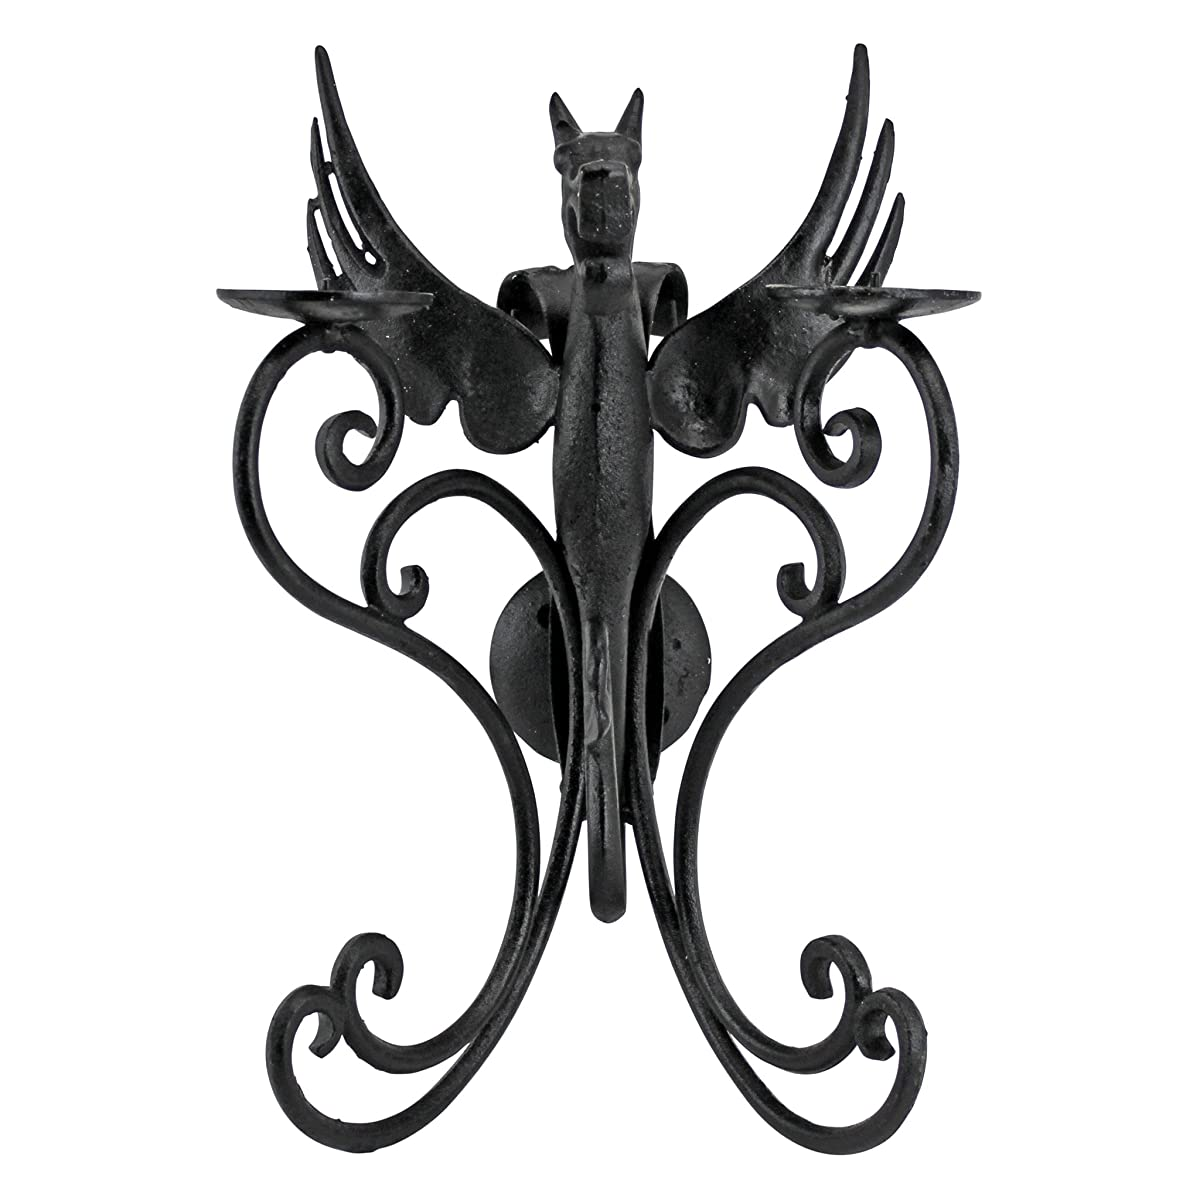 Design Toscano Castle Dragon Iron Wall Sconce